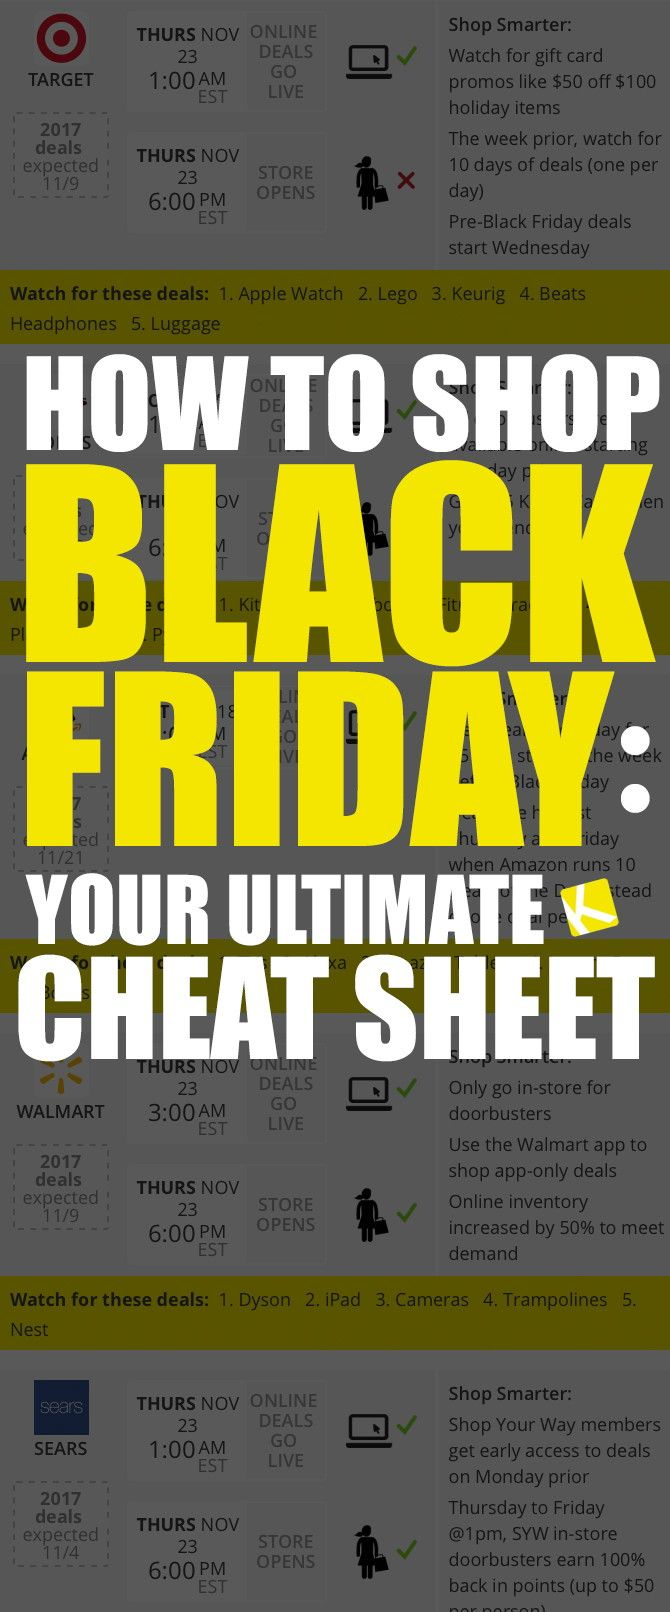 How To Shop Black Friday 2018 Deals Your Ultimate Cheat Sheet